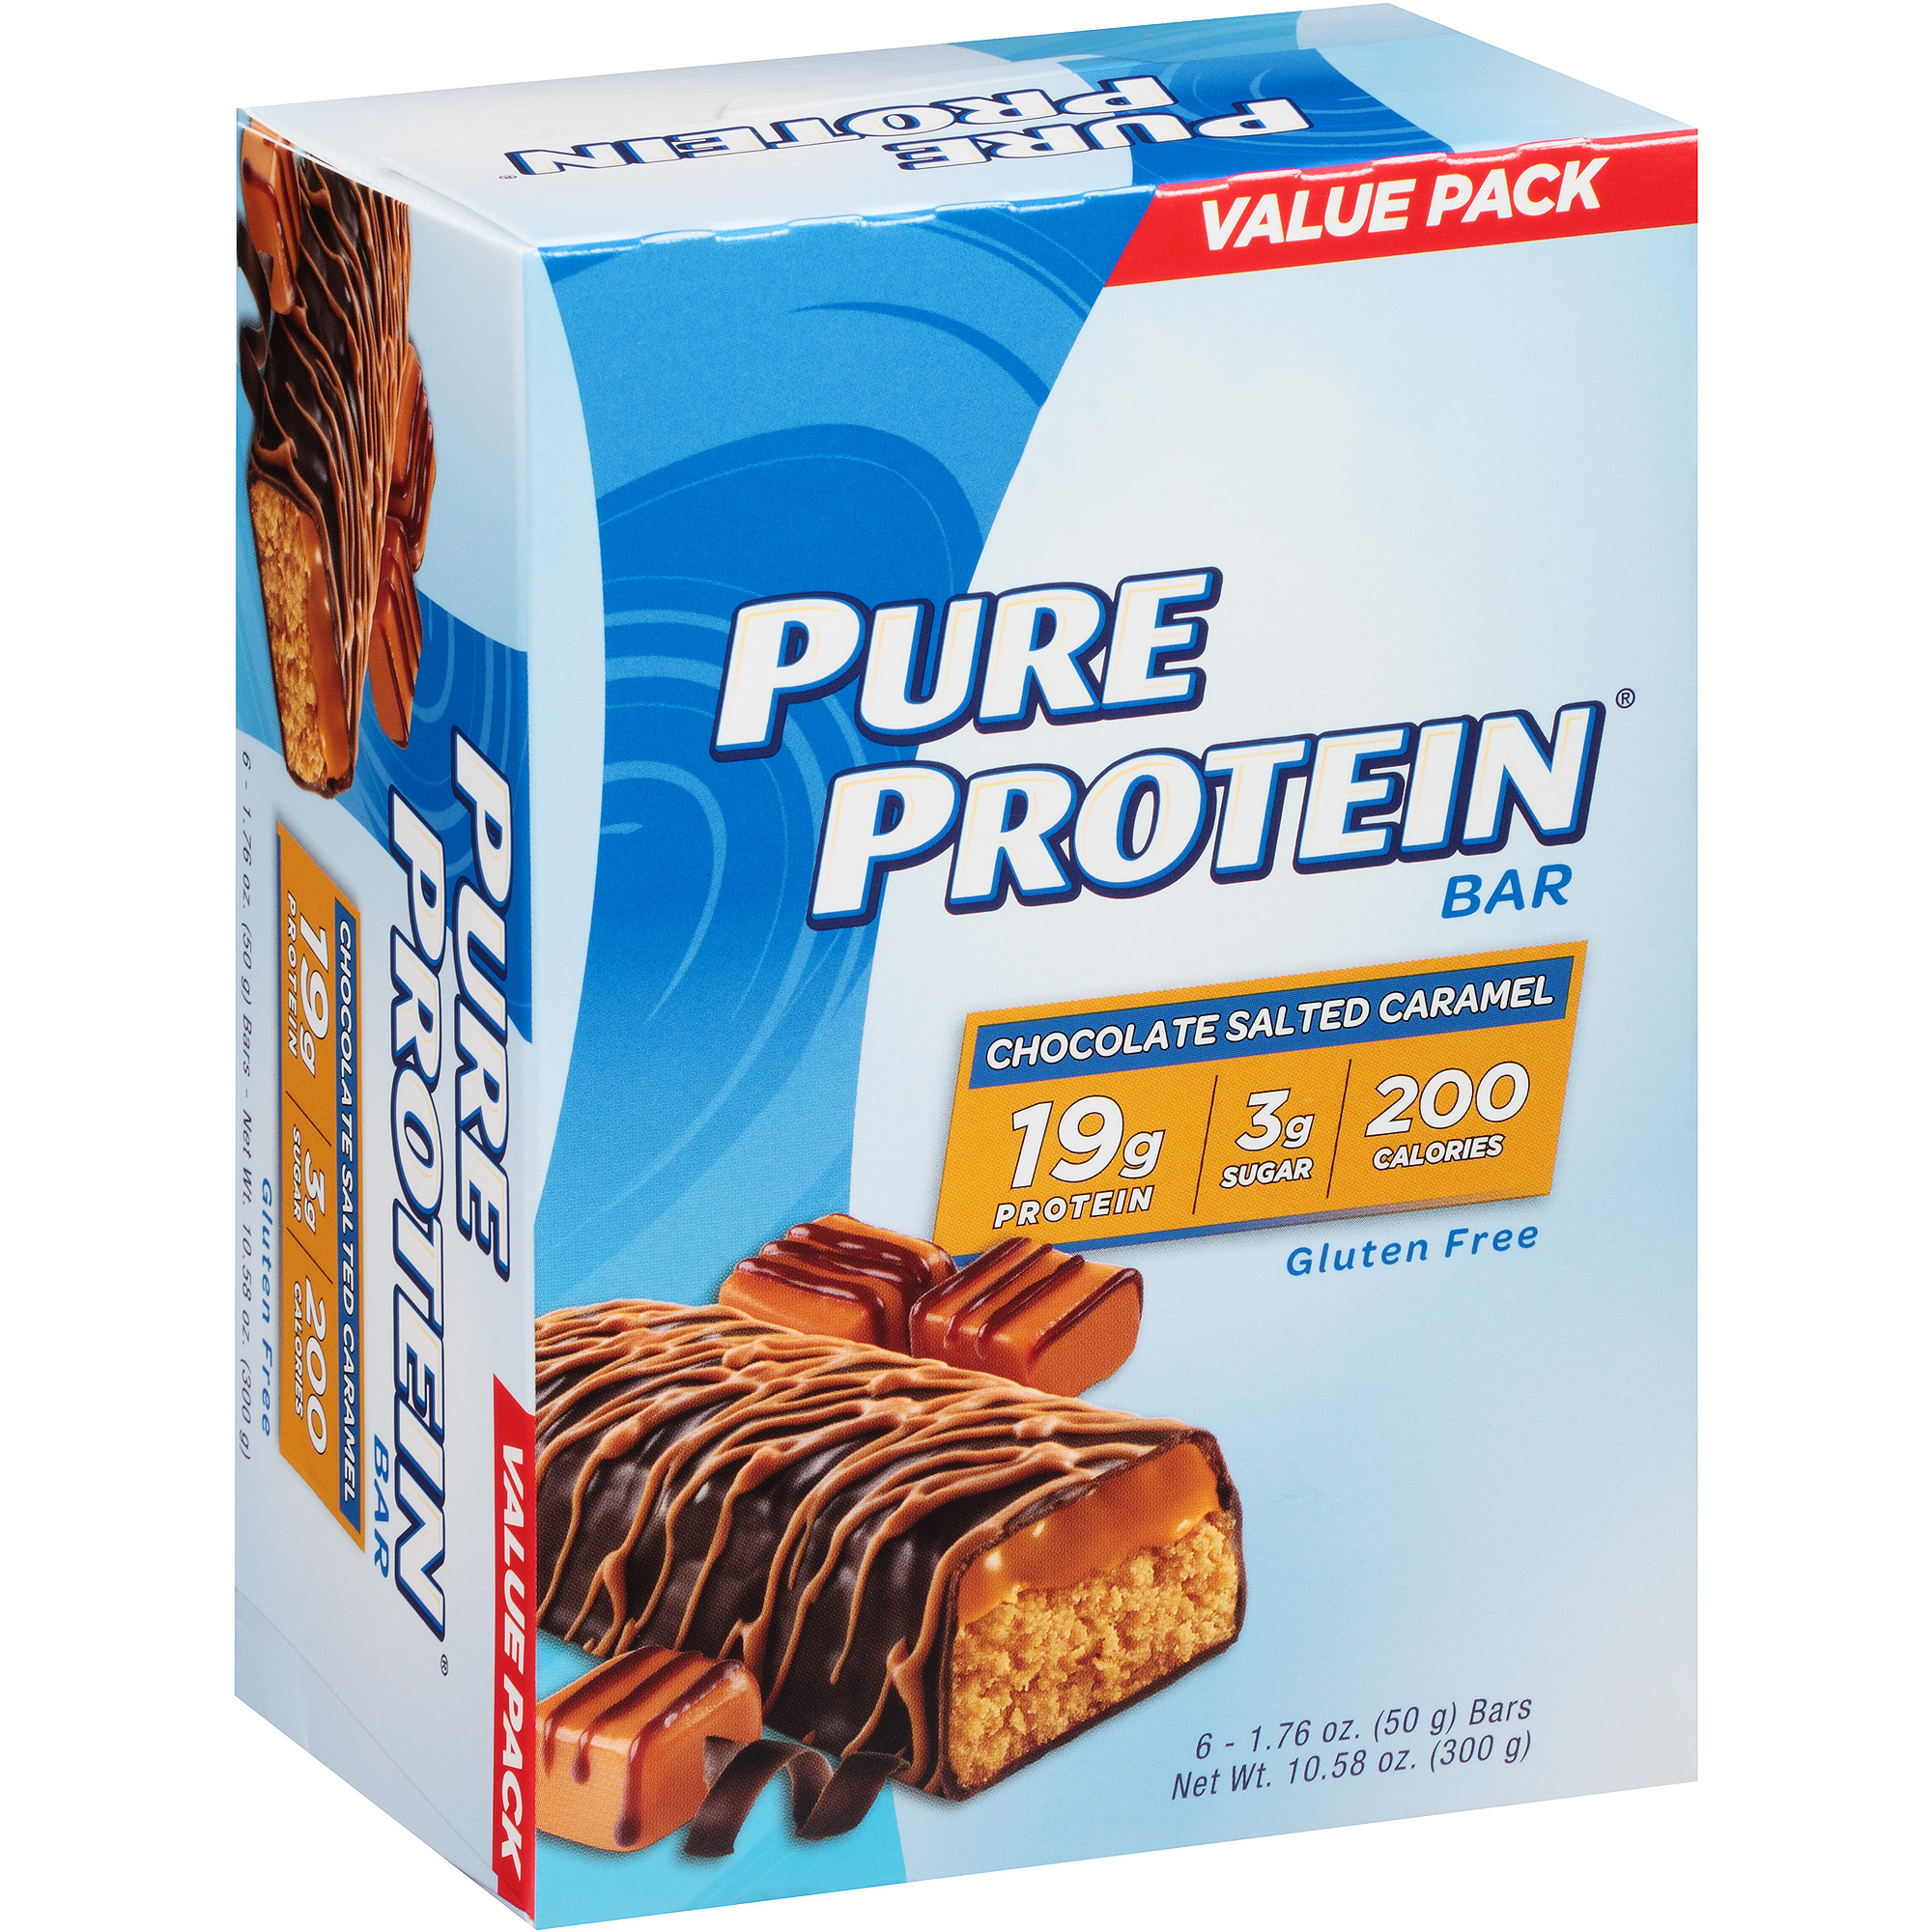 Pure Protein Bar, 19 Grams of Protein, Chocolate Salted Caramel, 1.76 Oz, 6 Ct